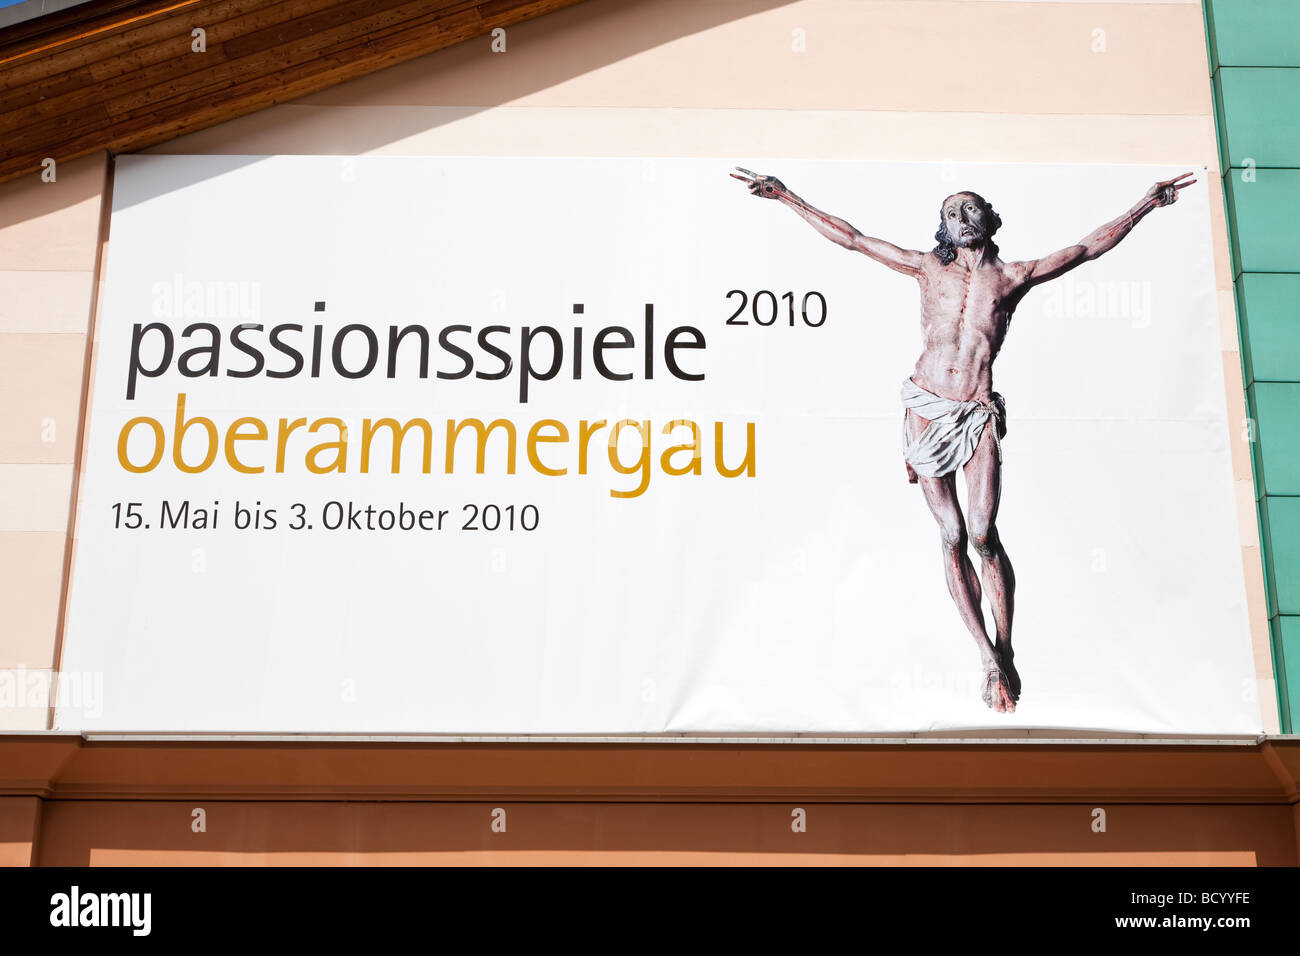 Oberammergau Passion Play Theatre poster 2010, Baviera, Germania Immagini Stock